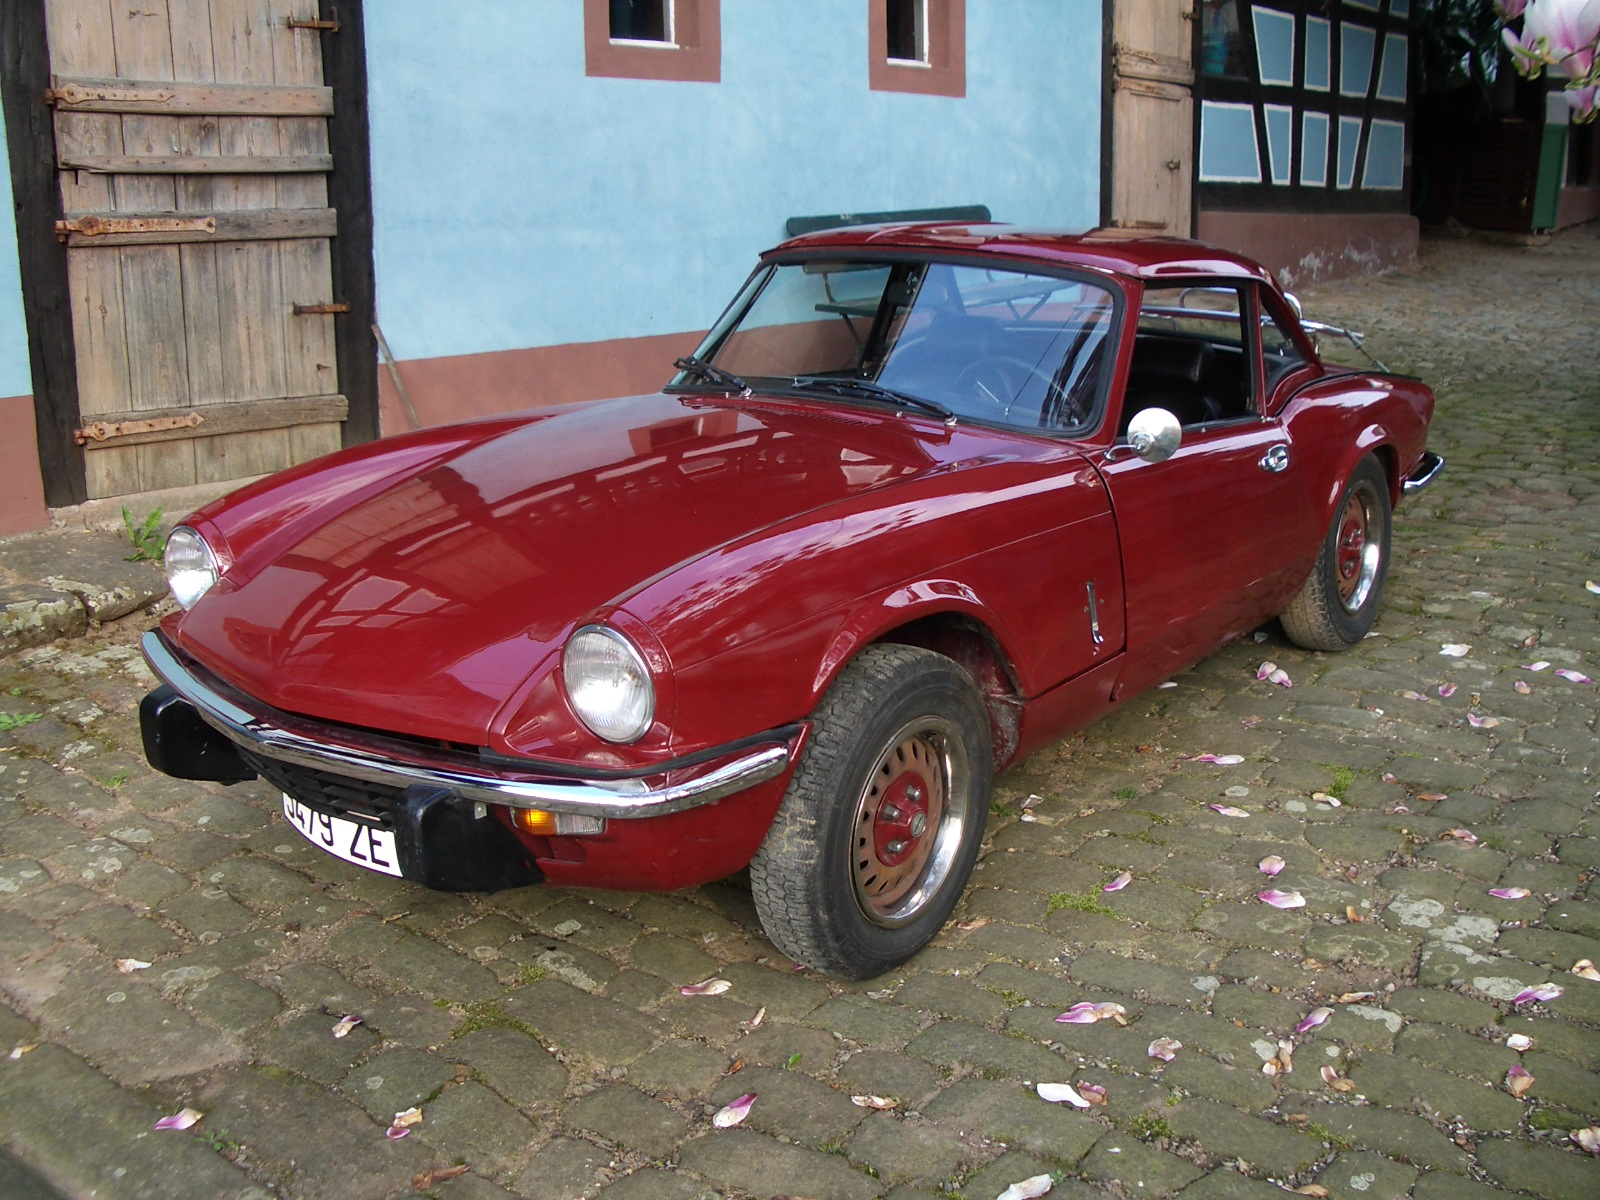 file triumph spitfire 1500 with hardtop and luggage rack wikimedia commons. Black Bedroom Furniture Sets. Home Design Ideas